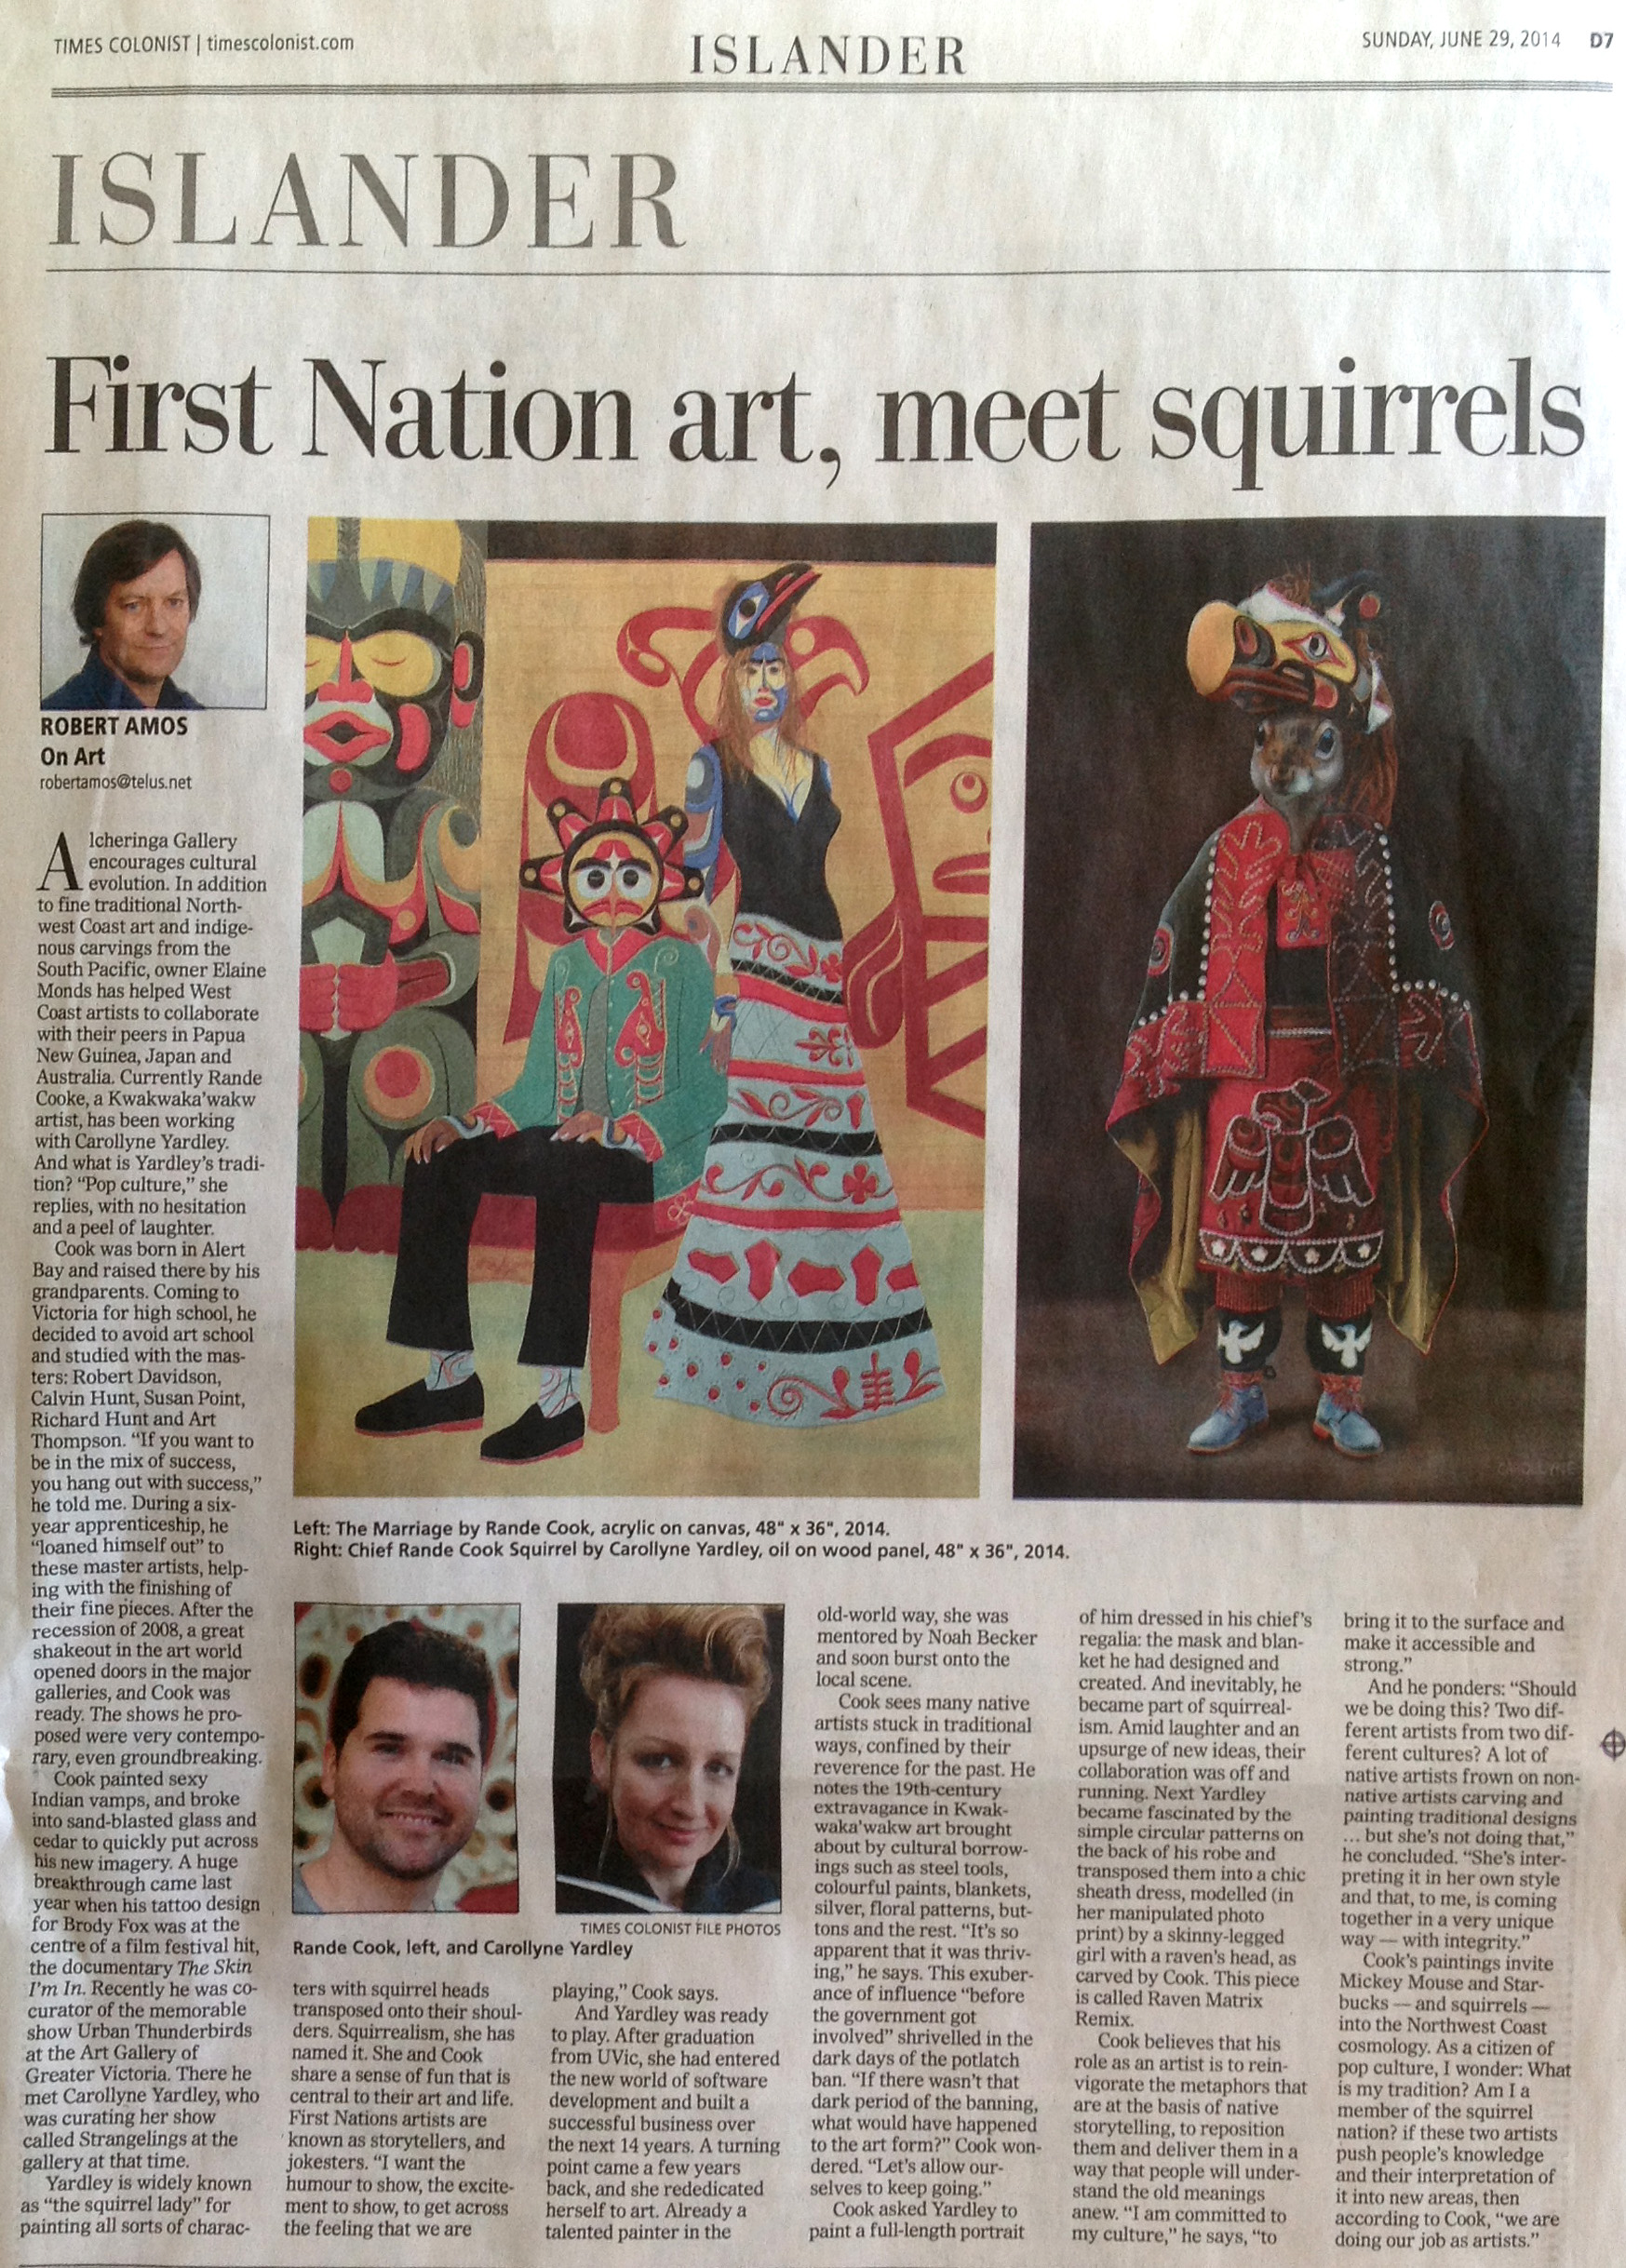 Robert Amos, First Nation art, meet squirrels, Times Colonist, D7, Sunday, June 19, 2014.